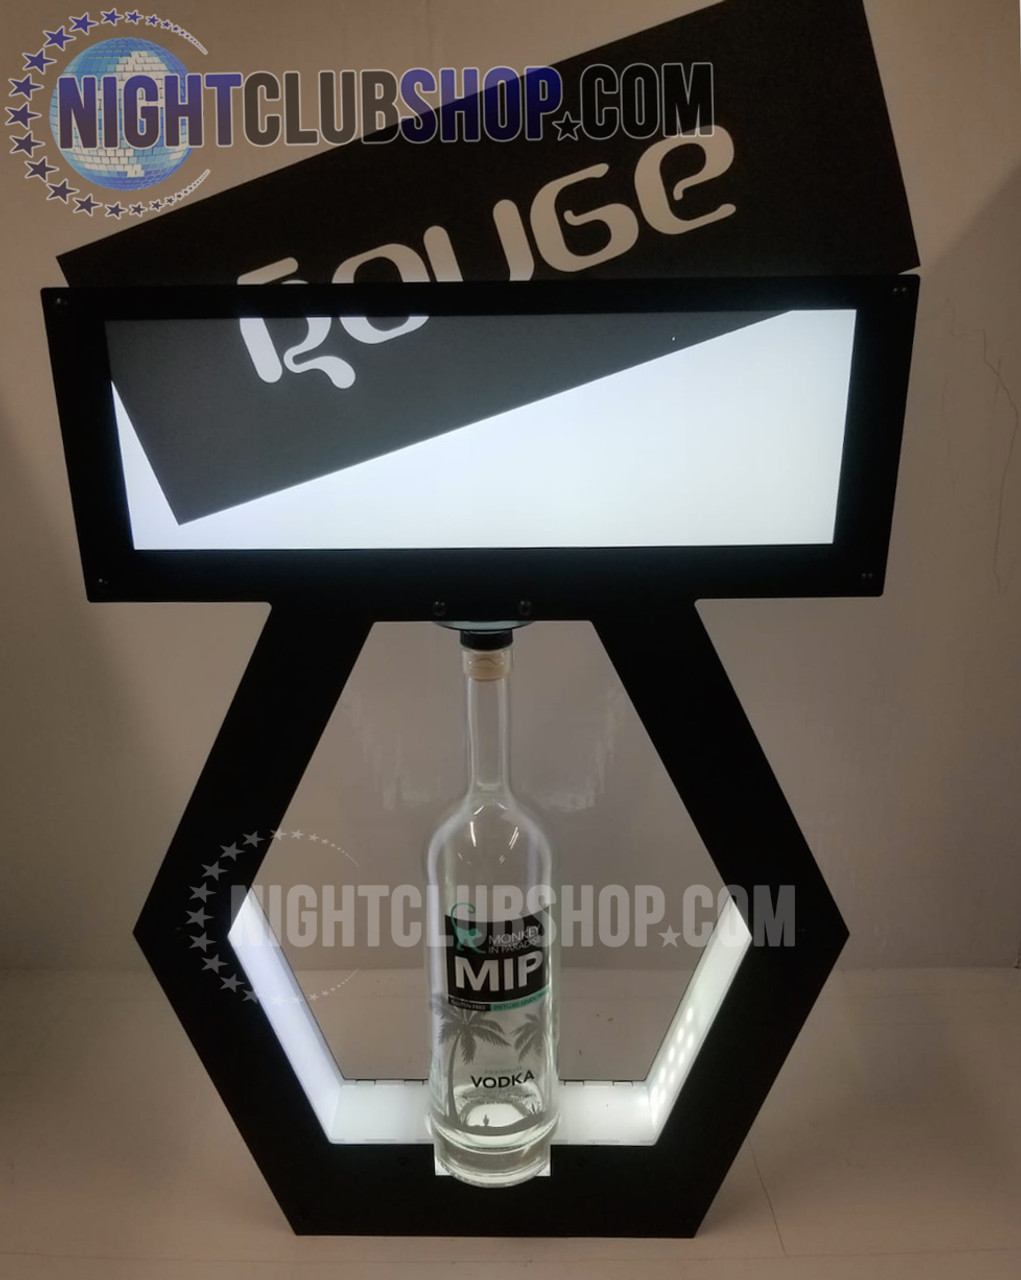 VIP,Banner,Top,interchangeable,Tray,Lightbox,Light up,Print,Banner Top,Bottle Service,tray,Presenter,change, display,shield,nightclubshop